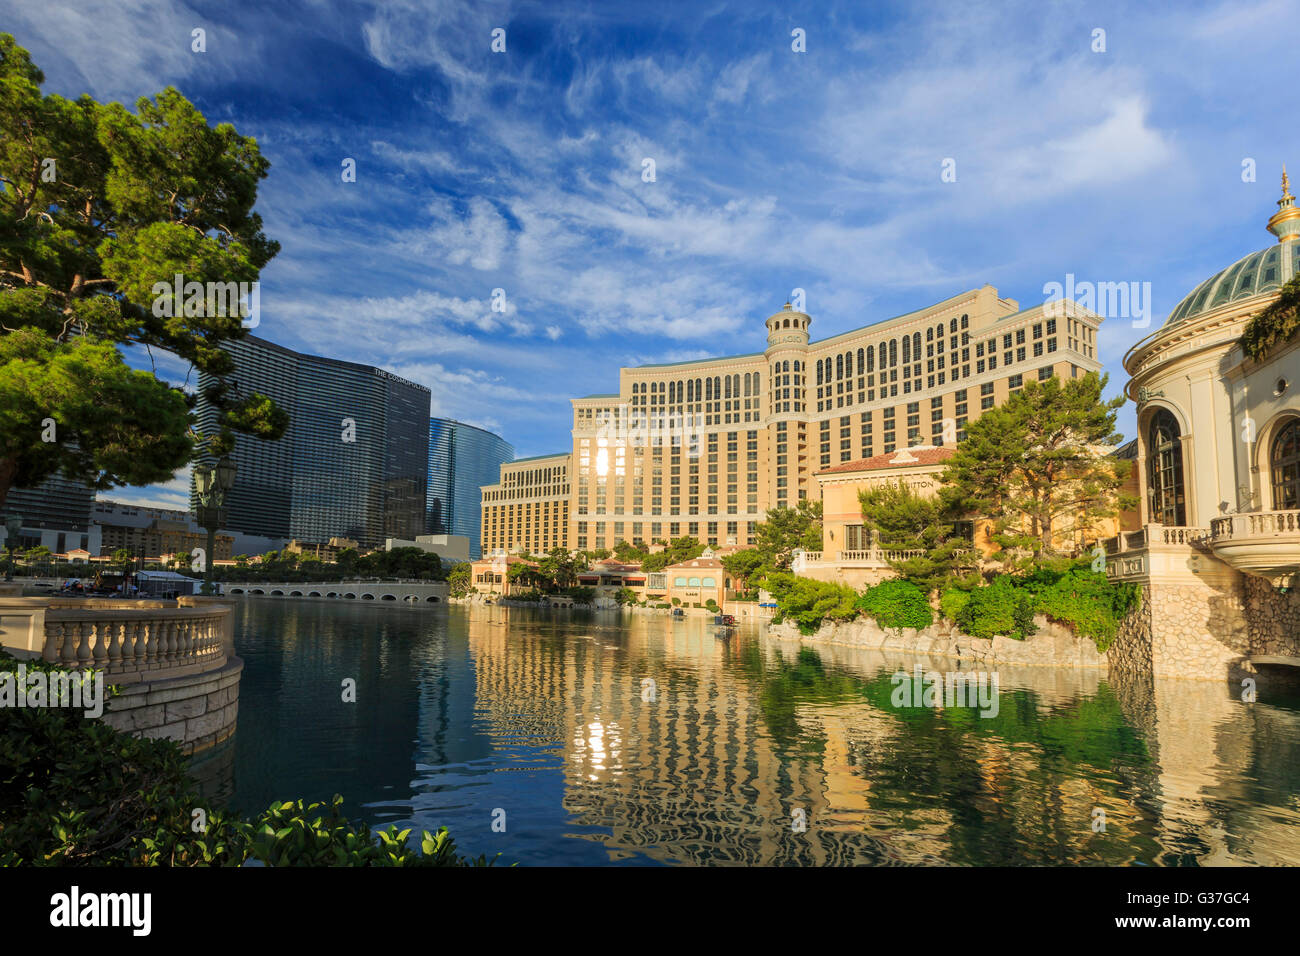 AUG 5, Las Vegas: The famous Bellagio Hotel and Casino on AUG 5, 2015 at Las Vegas, Nevada - Stock Image